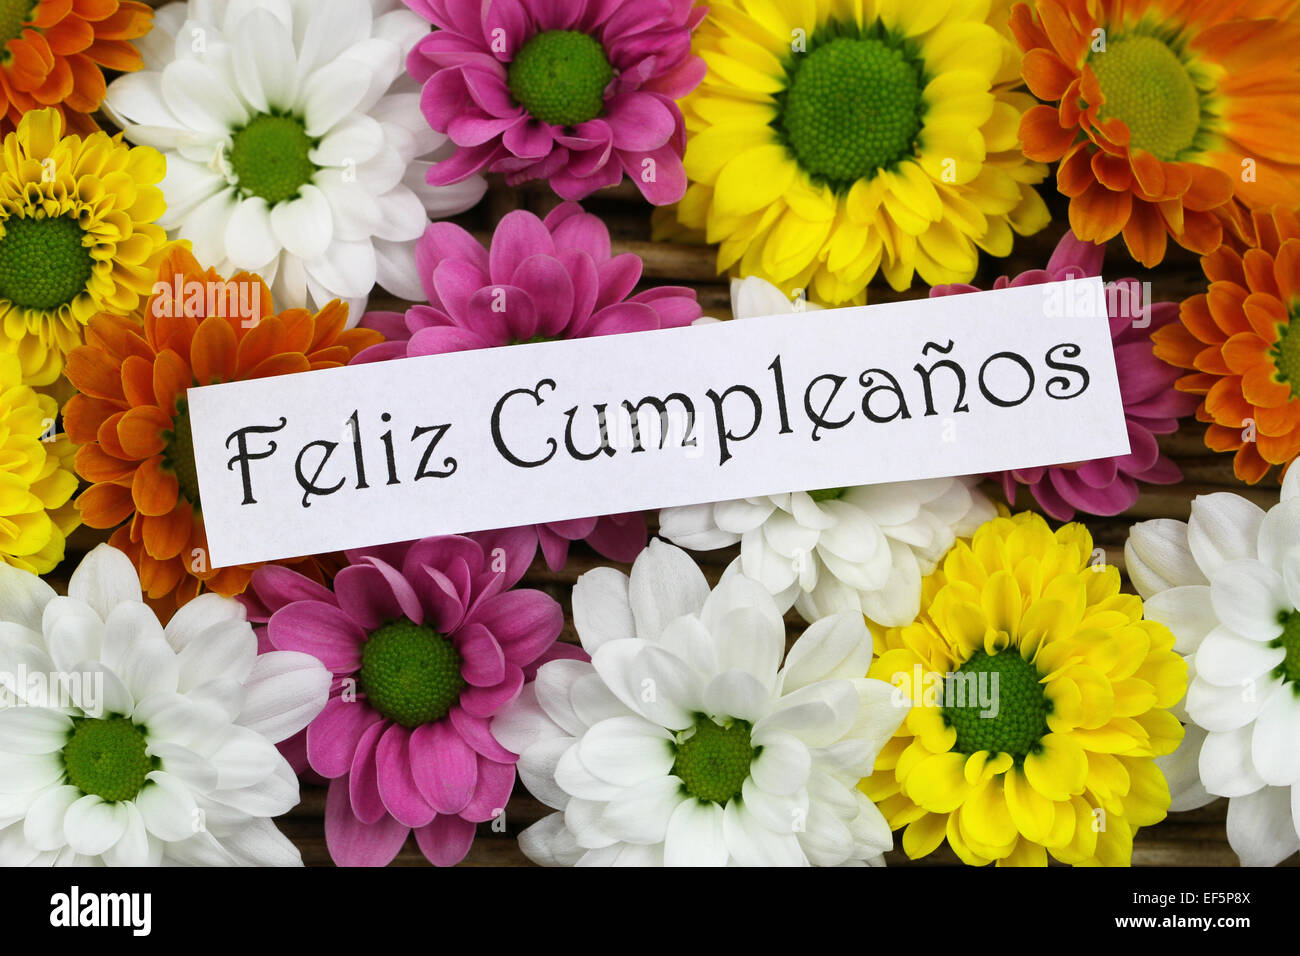 feliz cumpleanos which means happy birthday in spanish card with, Birthday card